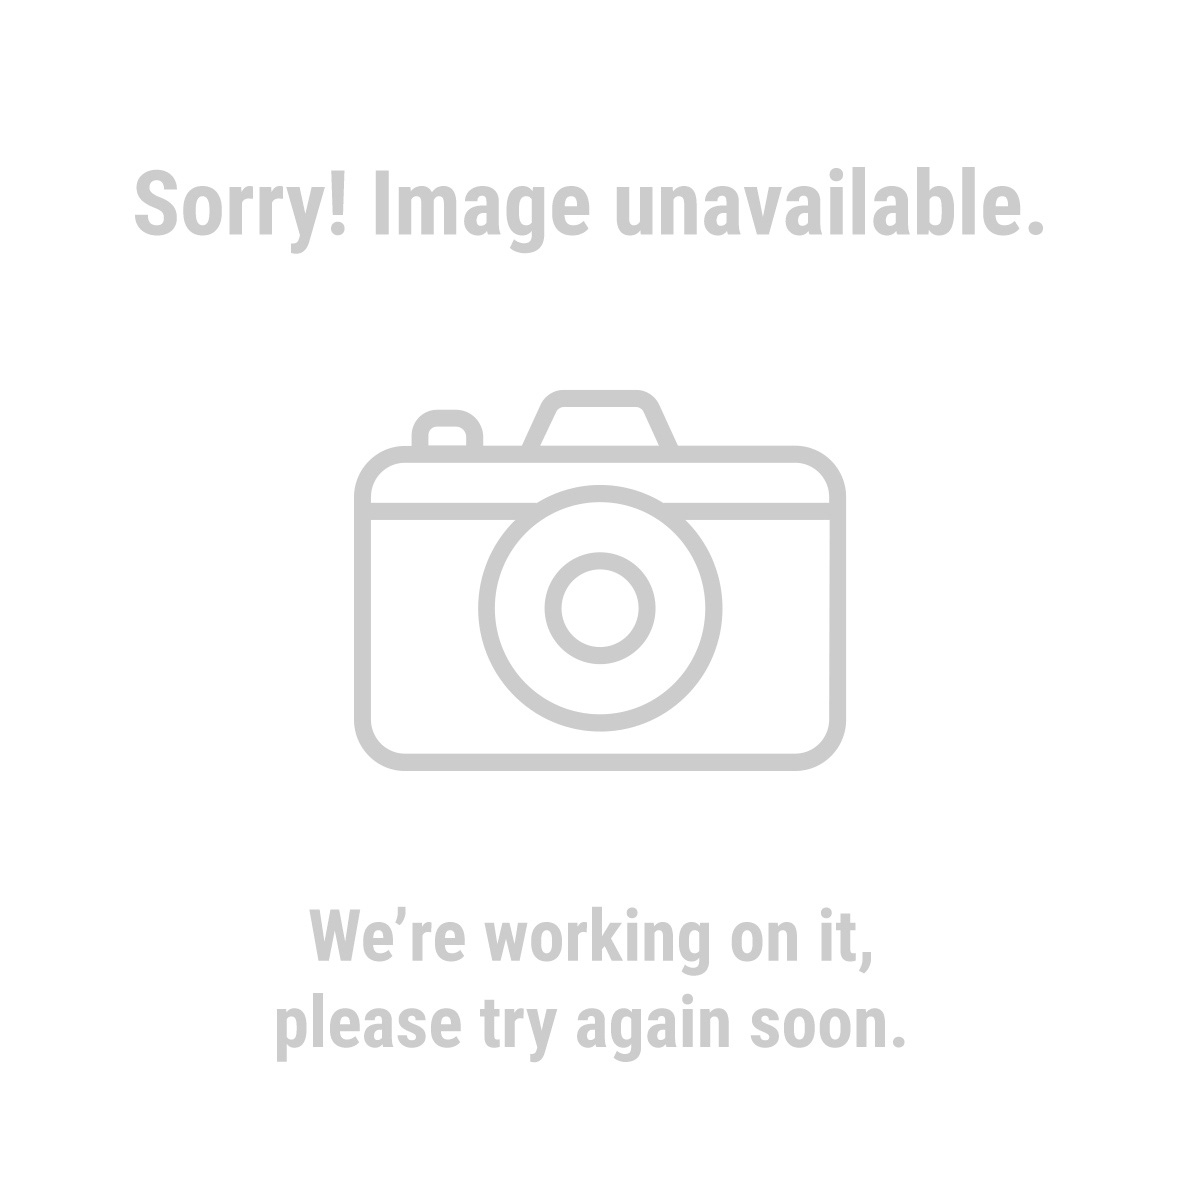 HFT 93674 100 Ft. 10 Gauge Triple Tap Extension Cord